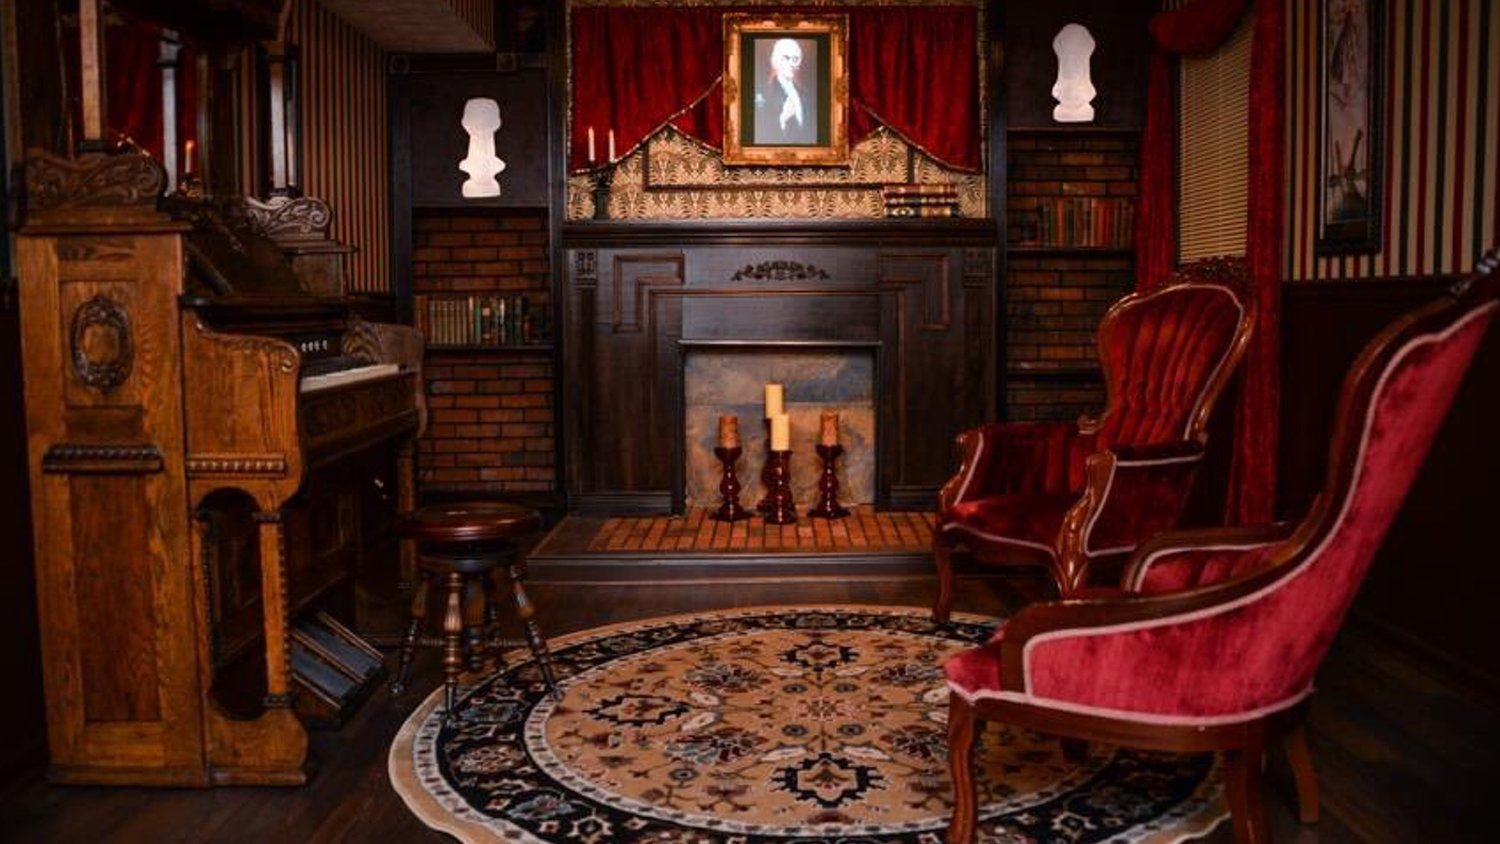 Disney Fan Gives His Basement a Wonderfully Creepy Haunted Mansion Overhaul